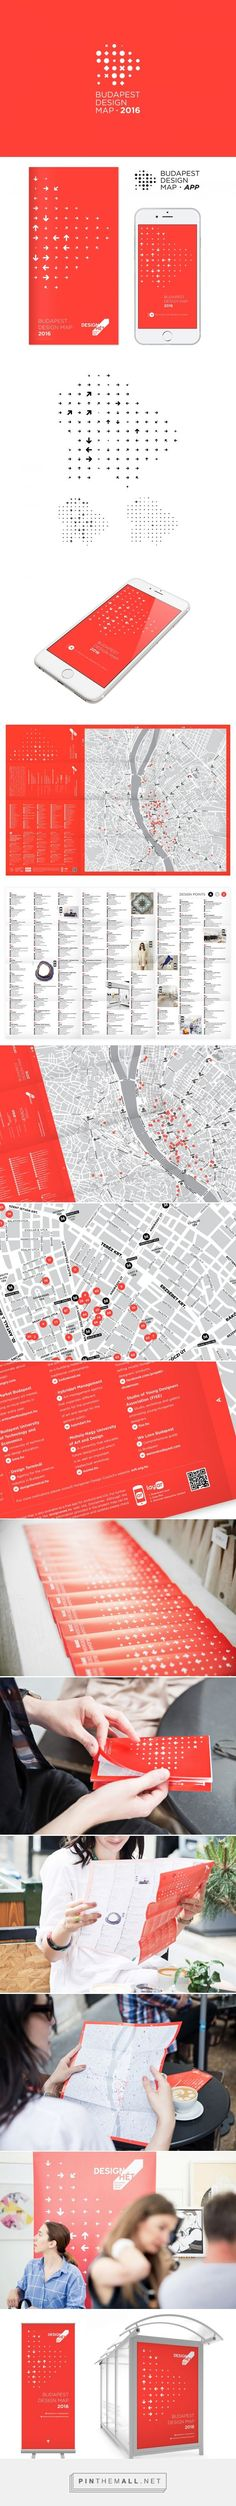 Budapest Design Map, 2016 on Behance Corporate Design, Brand Identity Design, Branding Design, Logo Design, Corporate Identity, City Branding, Event Branding, Logo Branding, Logos Online